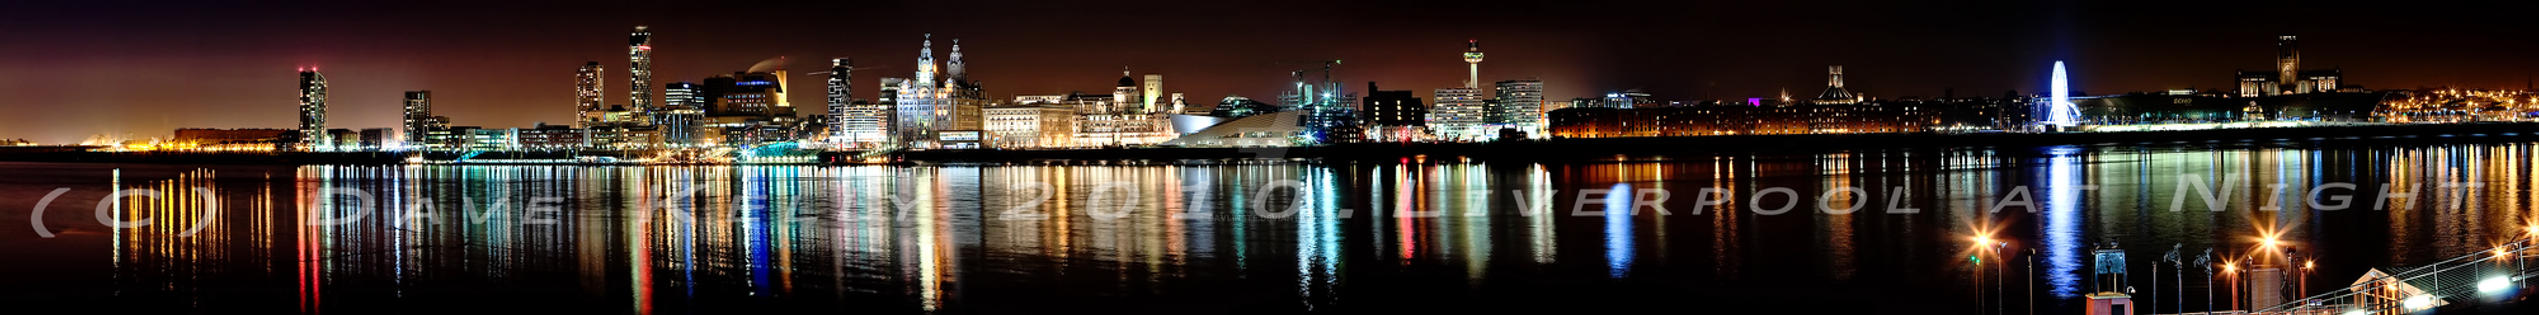 Liverpool at Night by davlinste